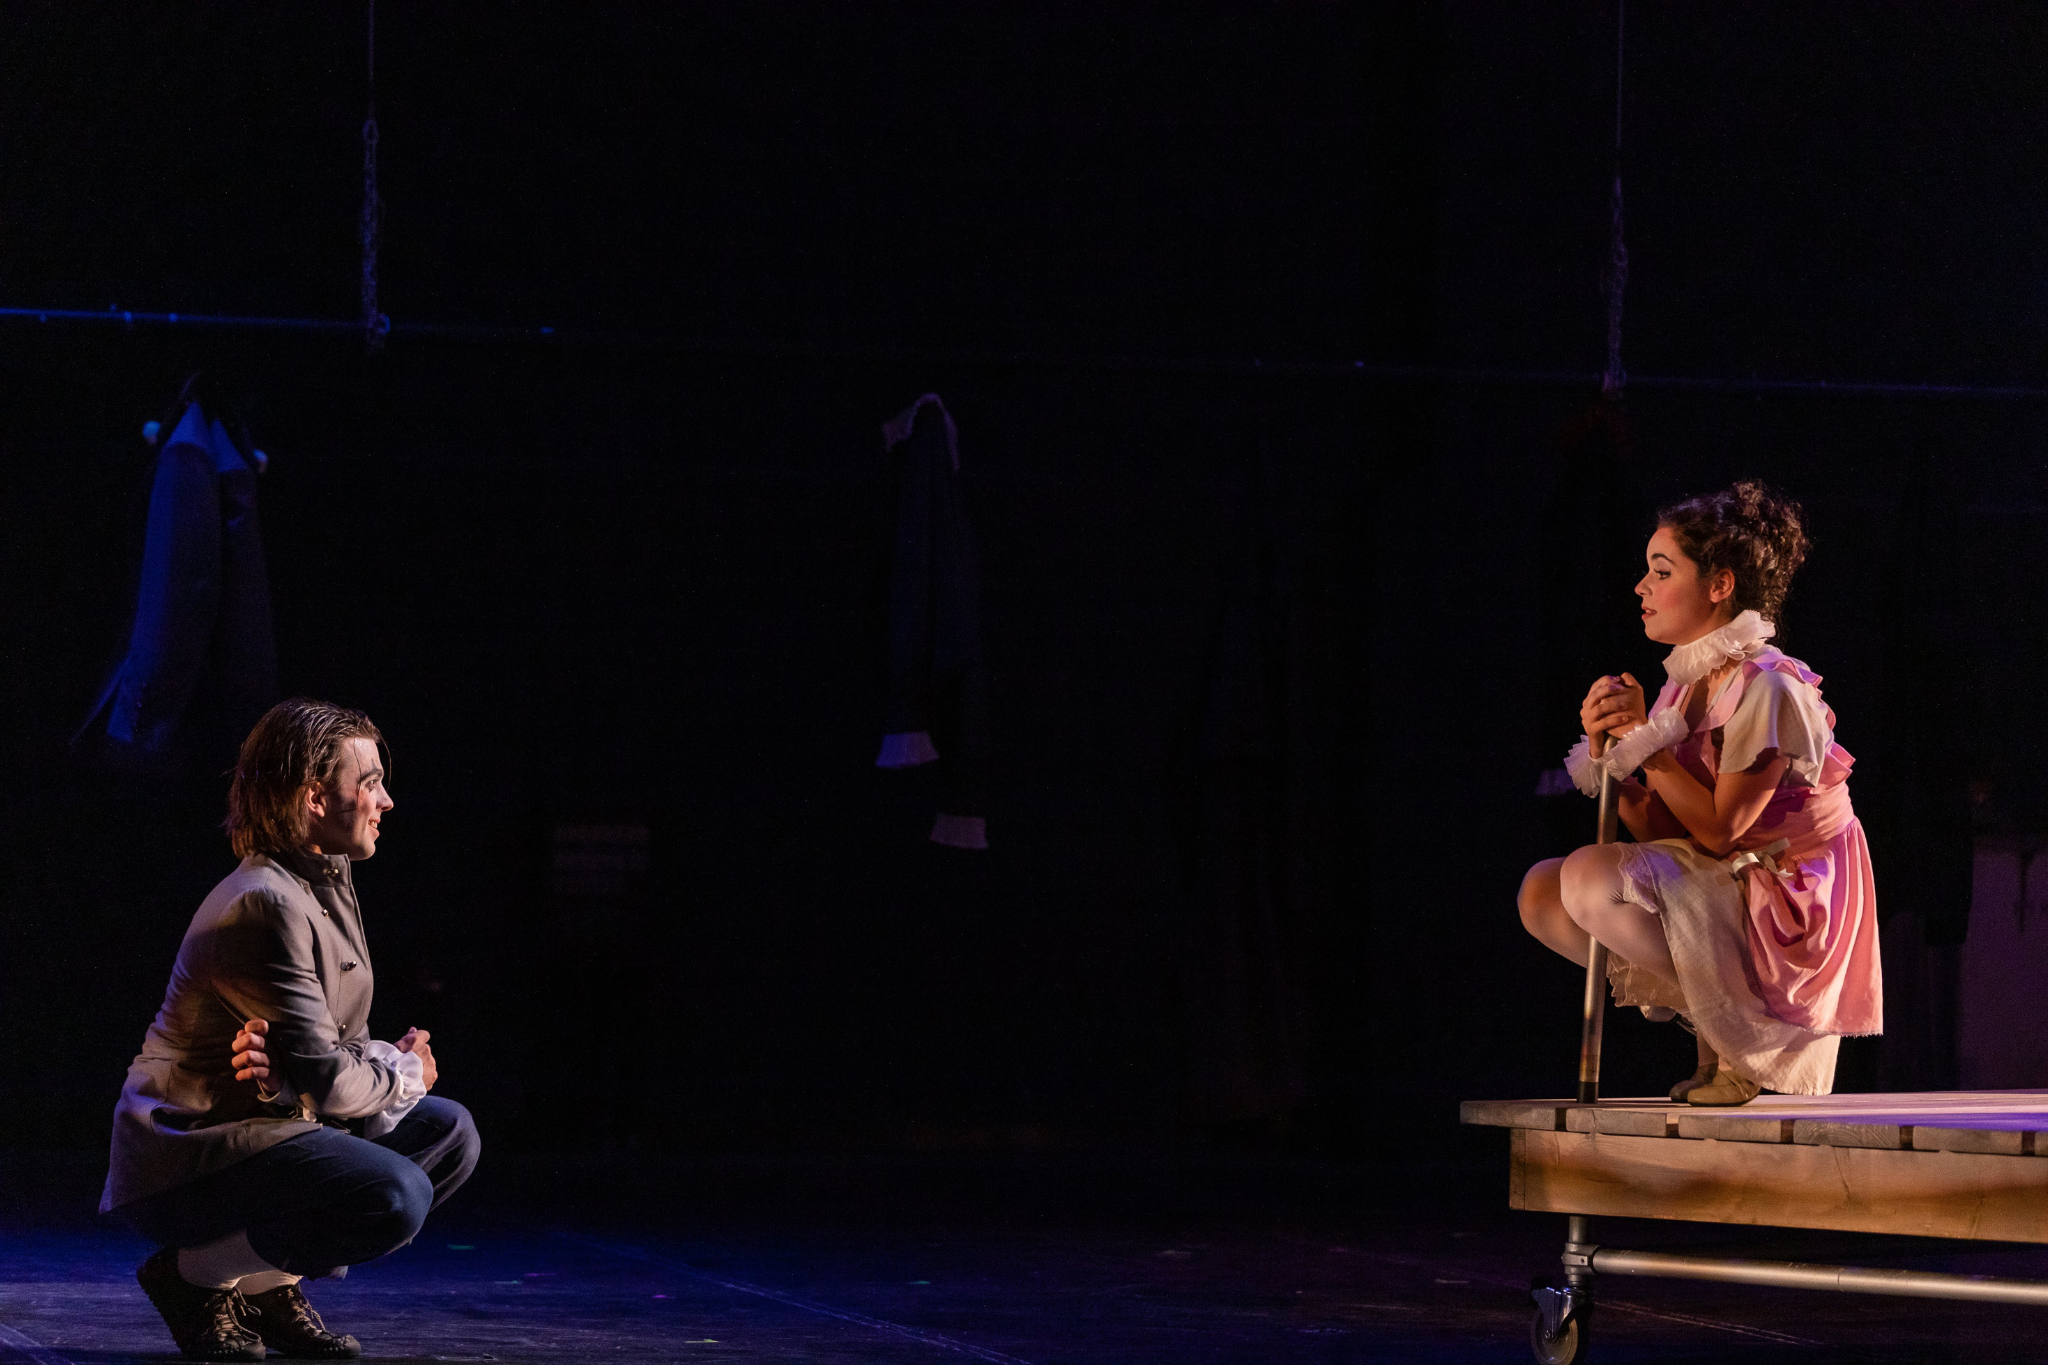 Greg Hermann (Romeo) and Erika Anclade (Juliet) in Romeo & Juliet, CSC2, 2019-Photo by Nile Hawver